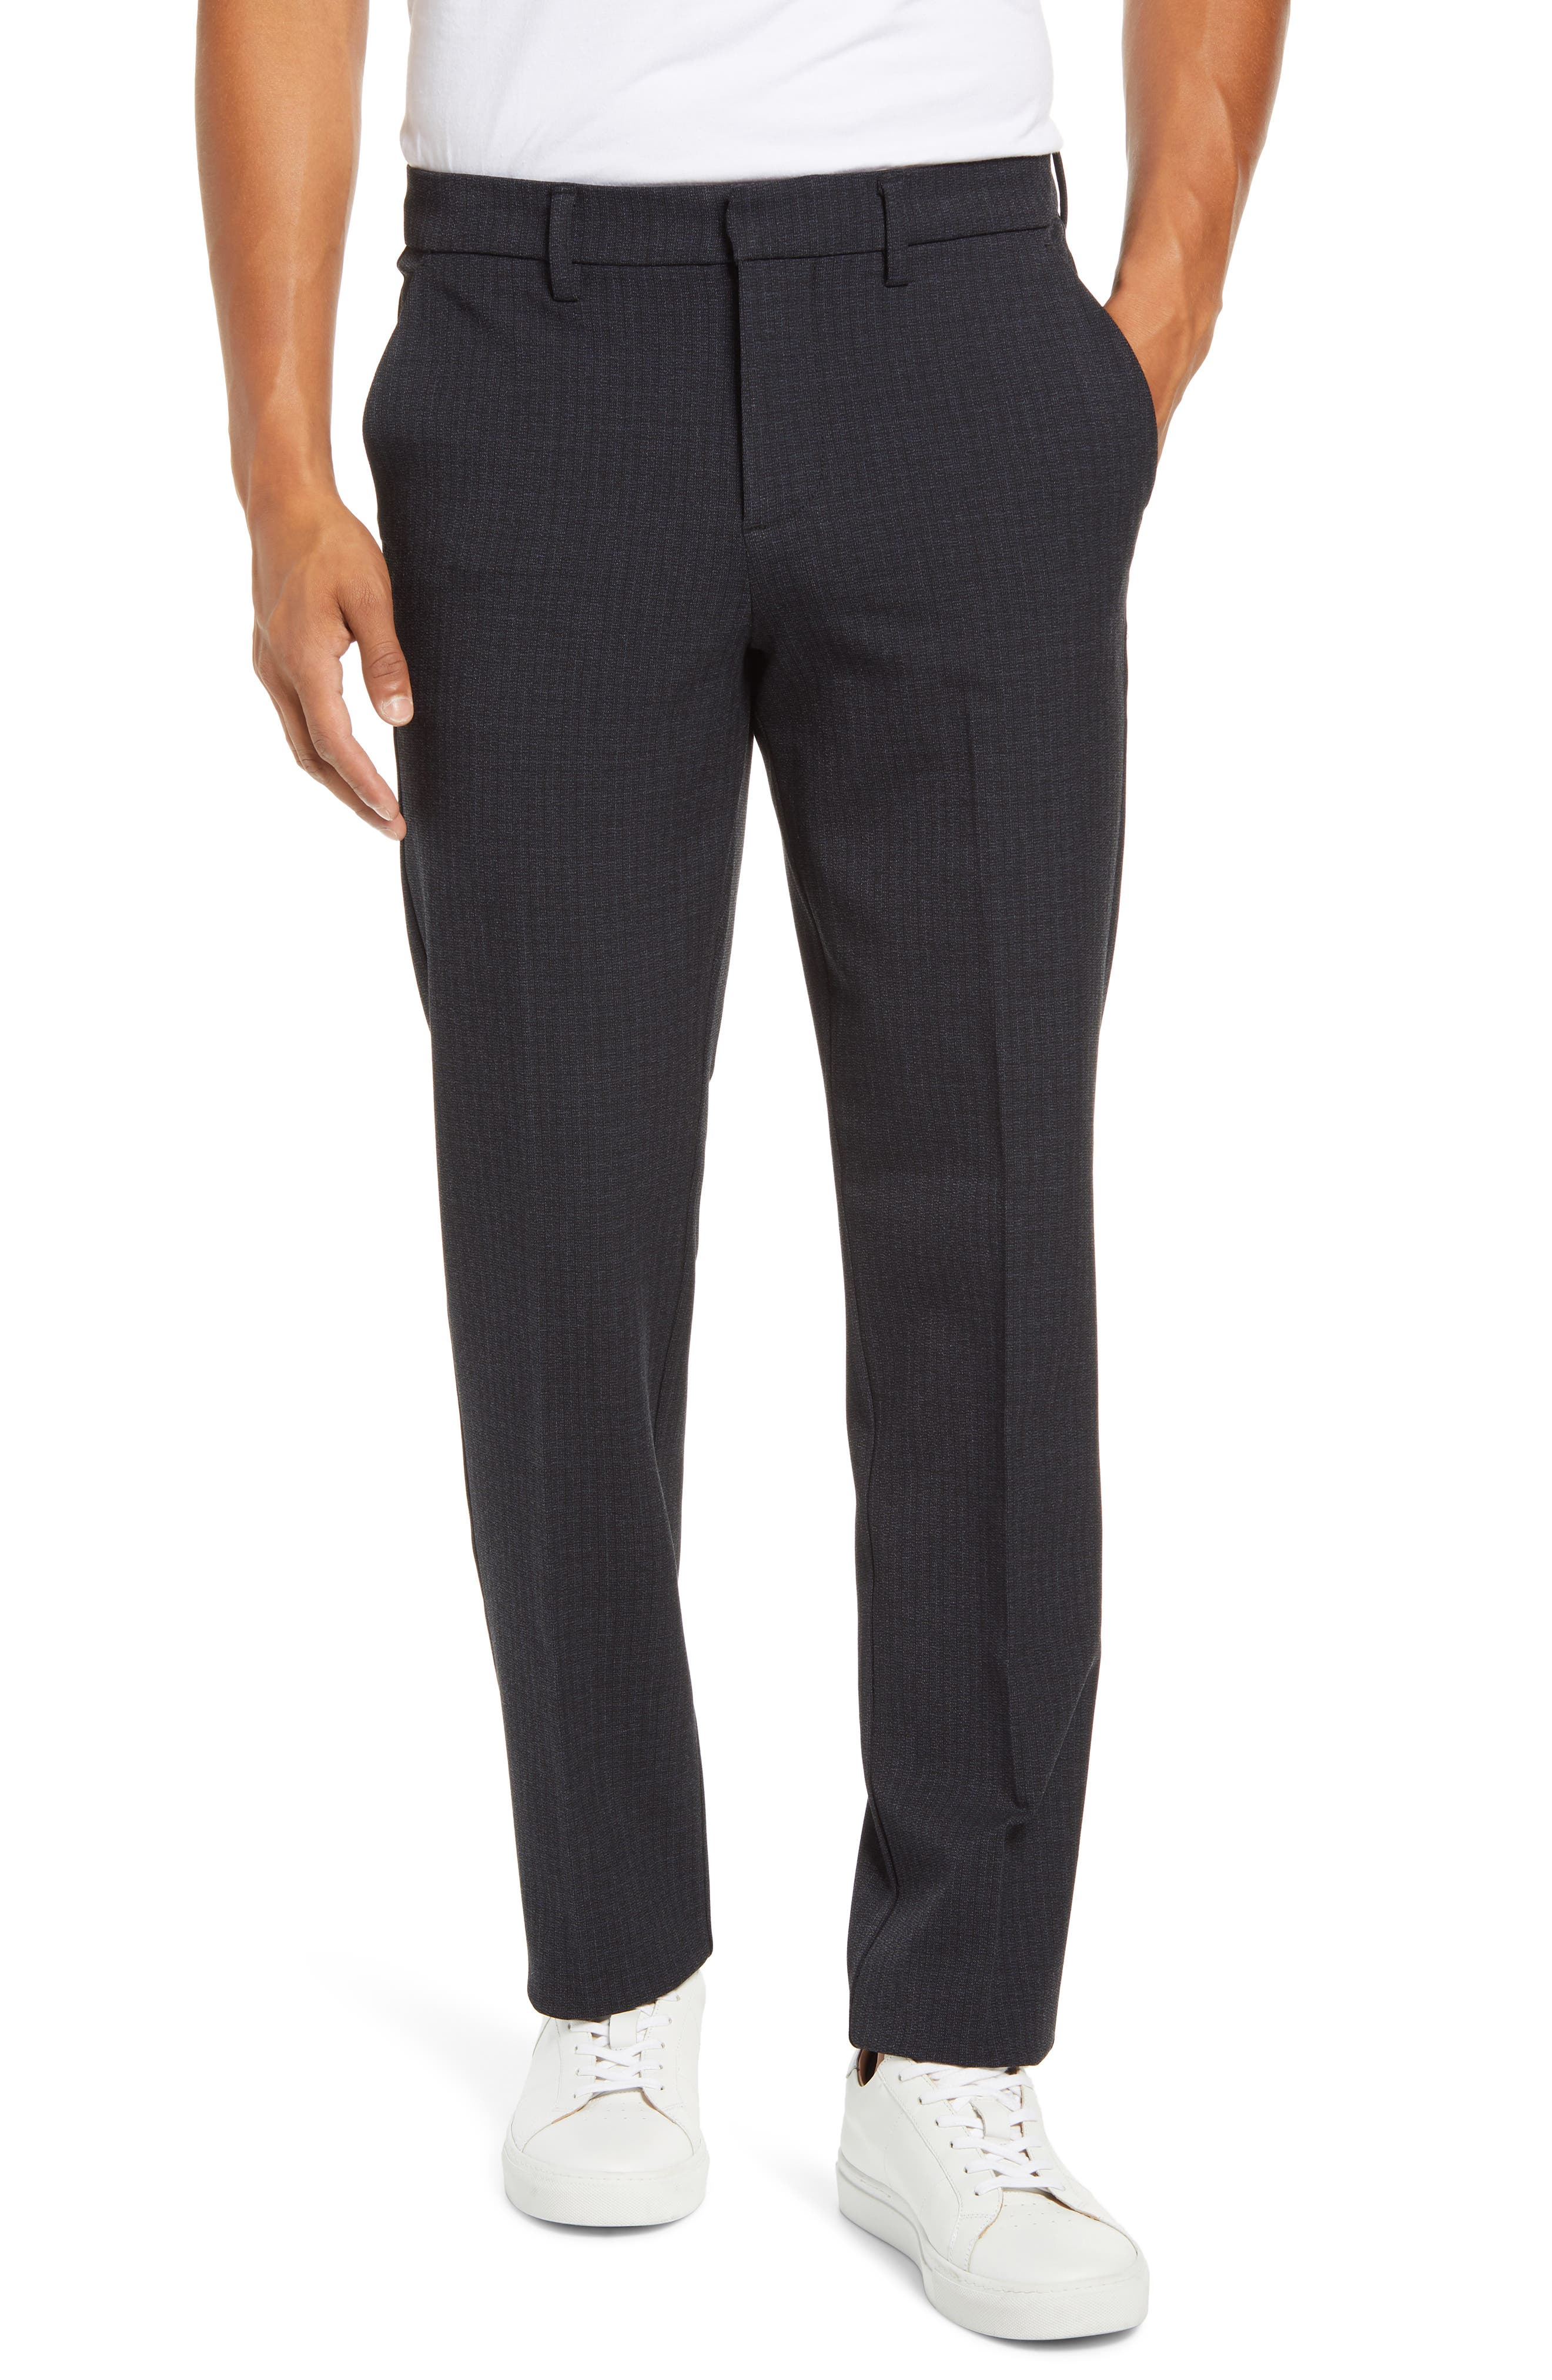 A flat front and refined five-pocket construction distinguish a pair of pants cut from a stretchy, shape-retaining ponte knit that makes them ideal for travel. Style Name: Liverpool Liverpool Travel Pants. Style Number: 6089213. Available in stores.